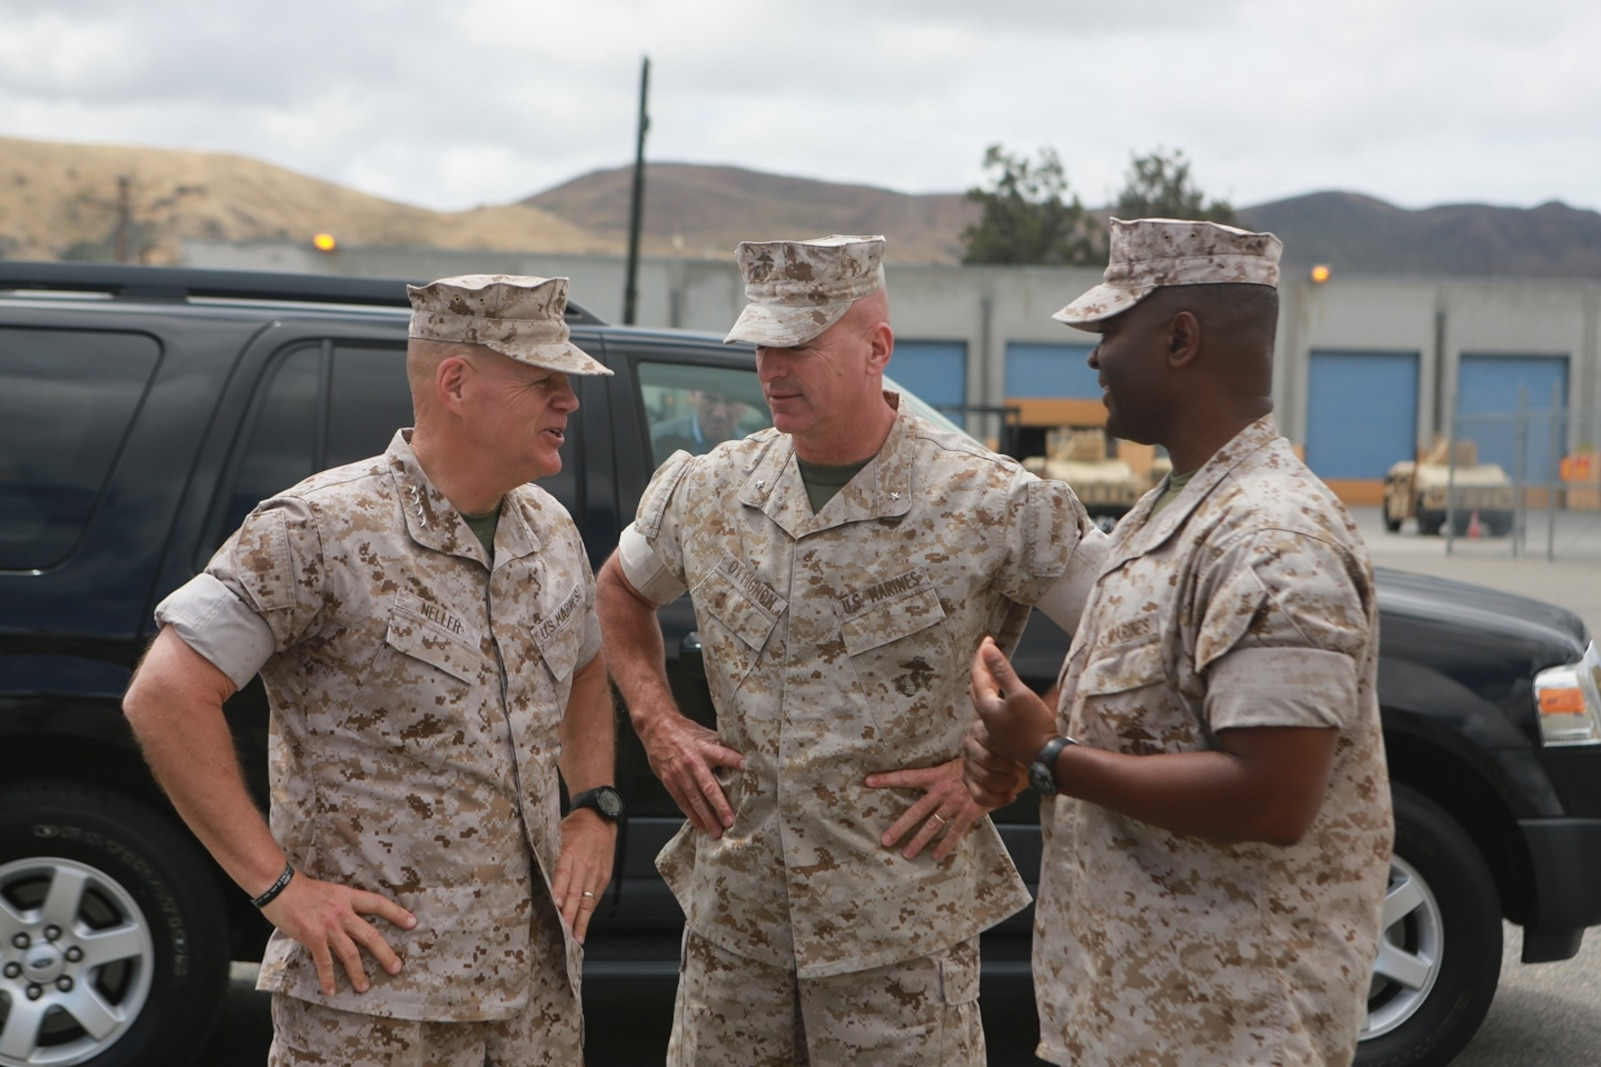 U.S. Marine Corps Gen. Robert Neller, Commandant of the Marine Corps, Brig. Gen. David Ottignon, commanding general, 1st Marine Logistics Group, and Col. Seth Ocloo, commanding officer, Combat Logistics Regiment 15, 1st MLG, talk about the current and future 3D printing operations using the Expeditionary Manufacturing System within the 1st MLG on Camp Pendleton, Calif., May 24, 2016. The Expeditionary Manufacturing System is a mobile 3D printing and milling shop designed to provide quick turnaround for mission critical parts in deployed environment. (U.S. Marine Corps photo by Sgt. Rodion Zabolotniy, Combat Camera, Camp Pendleton/RELEASED)